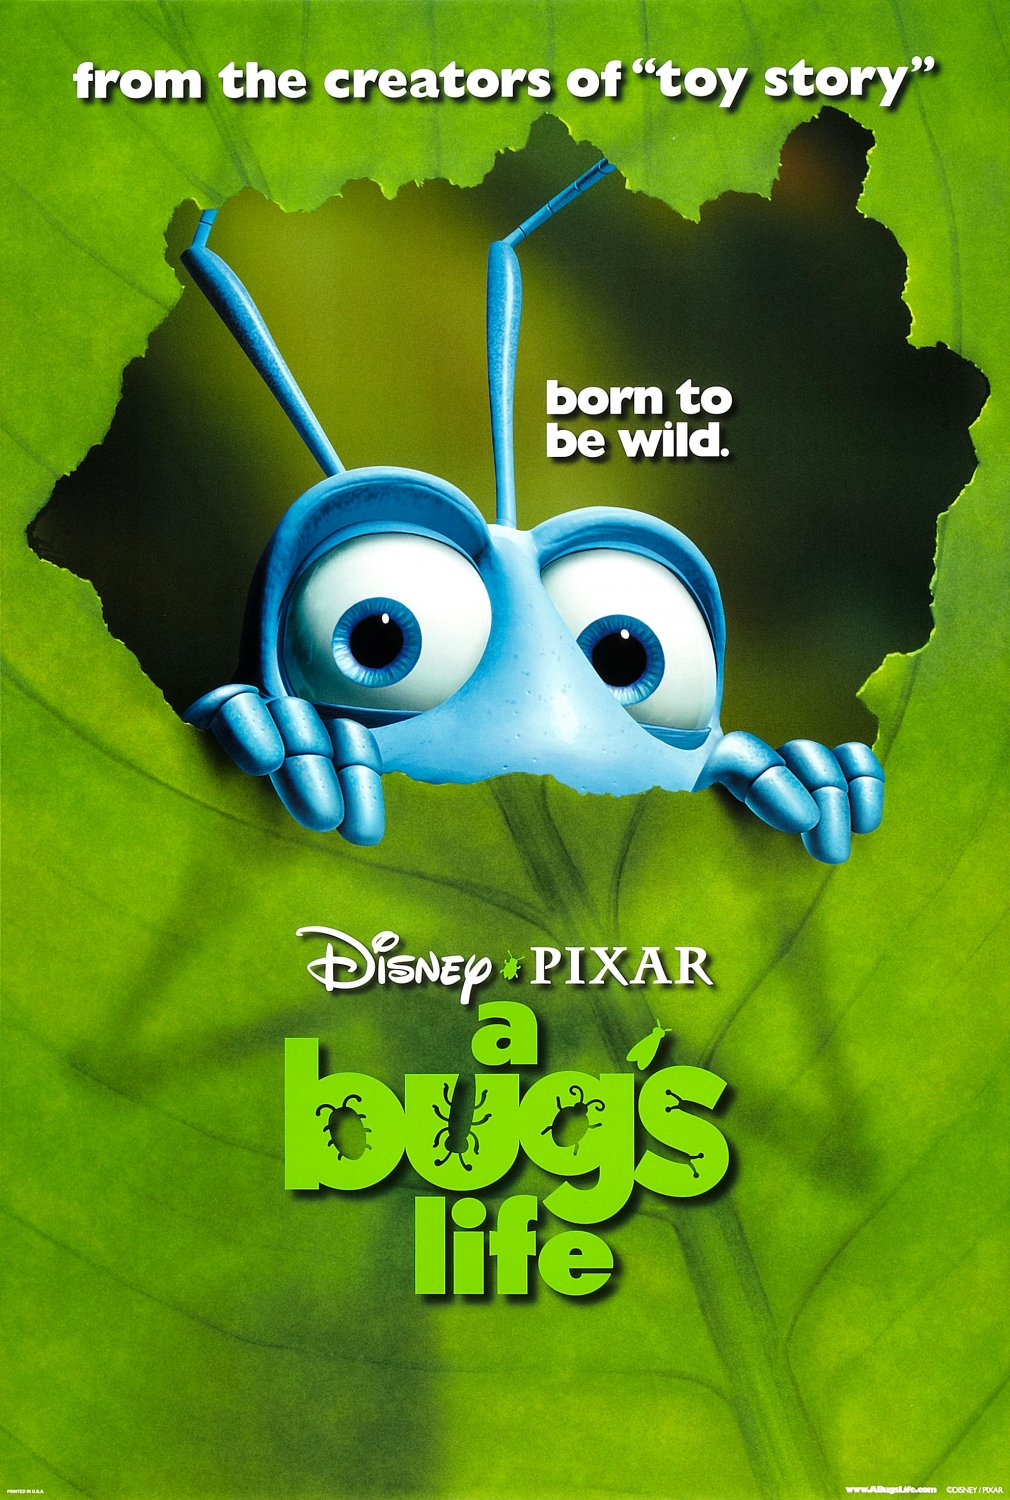 life as a bug A bug's life embark on an incredible journey with one little ant as he searches for a brave band of warriors to help him battle the bullying grasshoppers who threaten his home when he stumbles on a bumbling troupe of circus bugs instead, their only hope for victory is the bond of friendship and the awesome power of imagination.